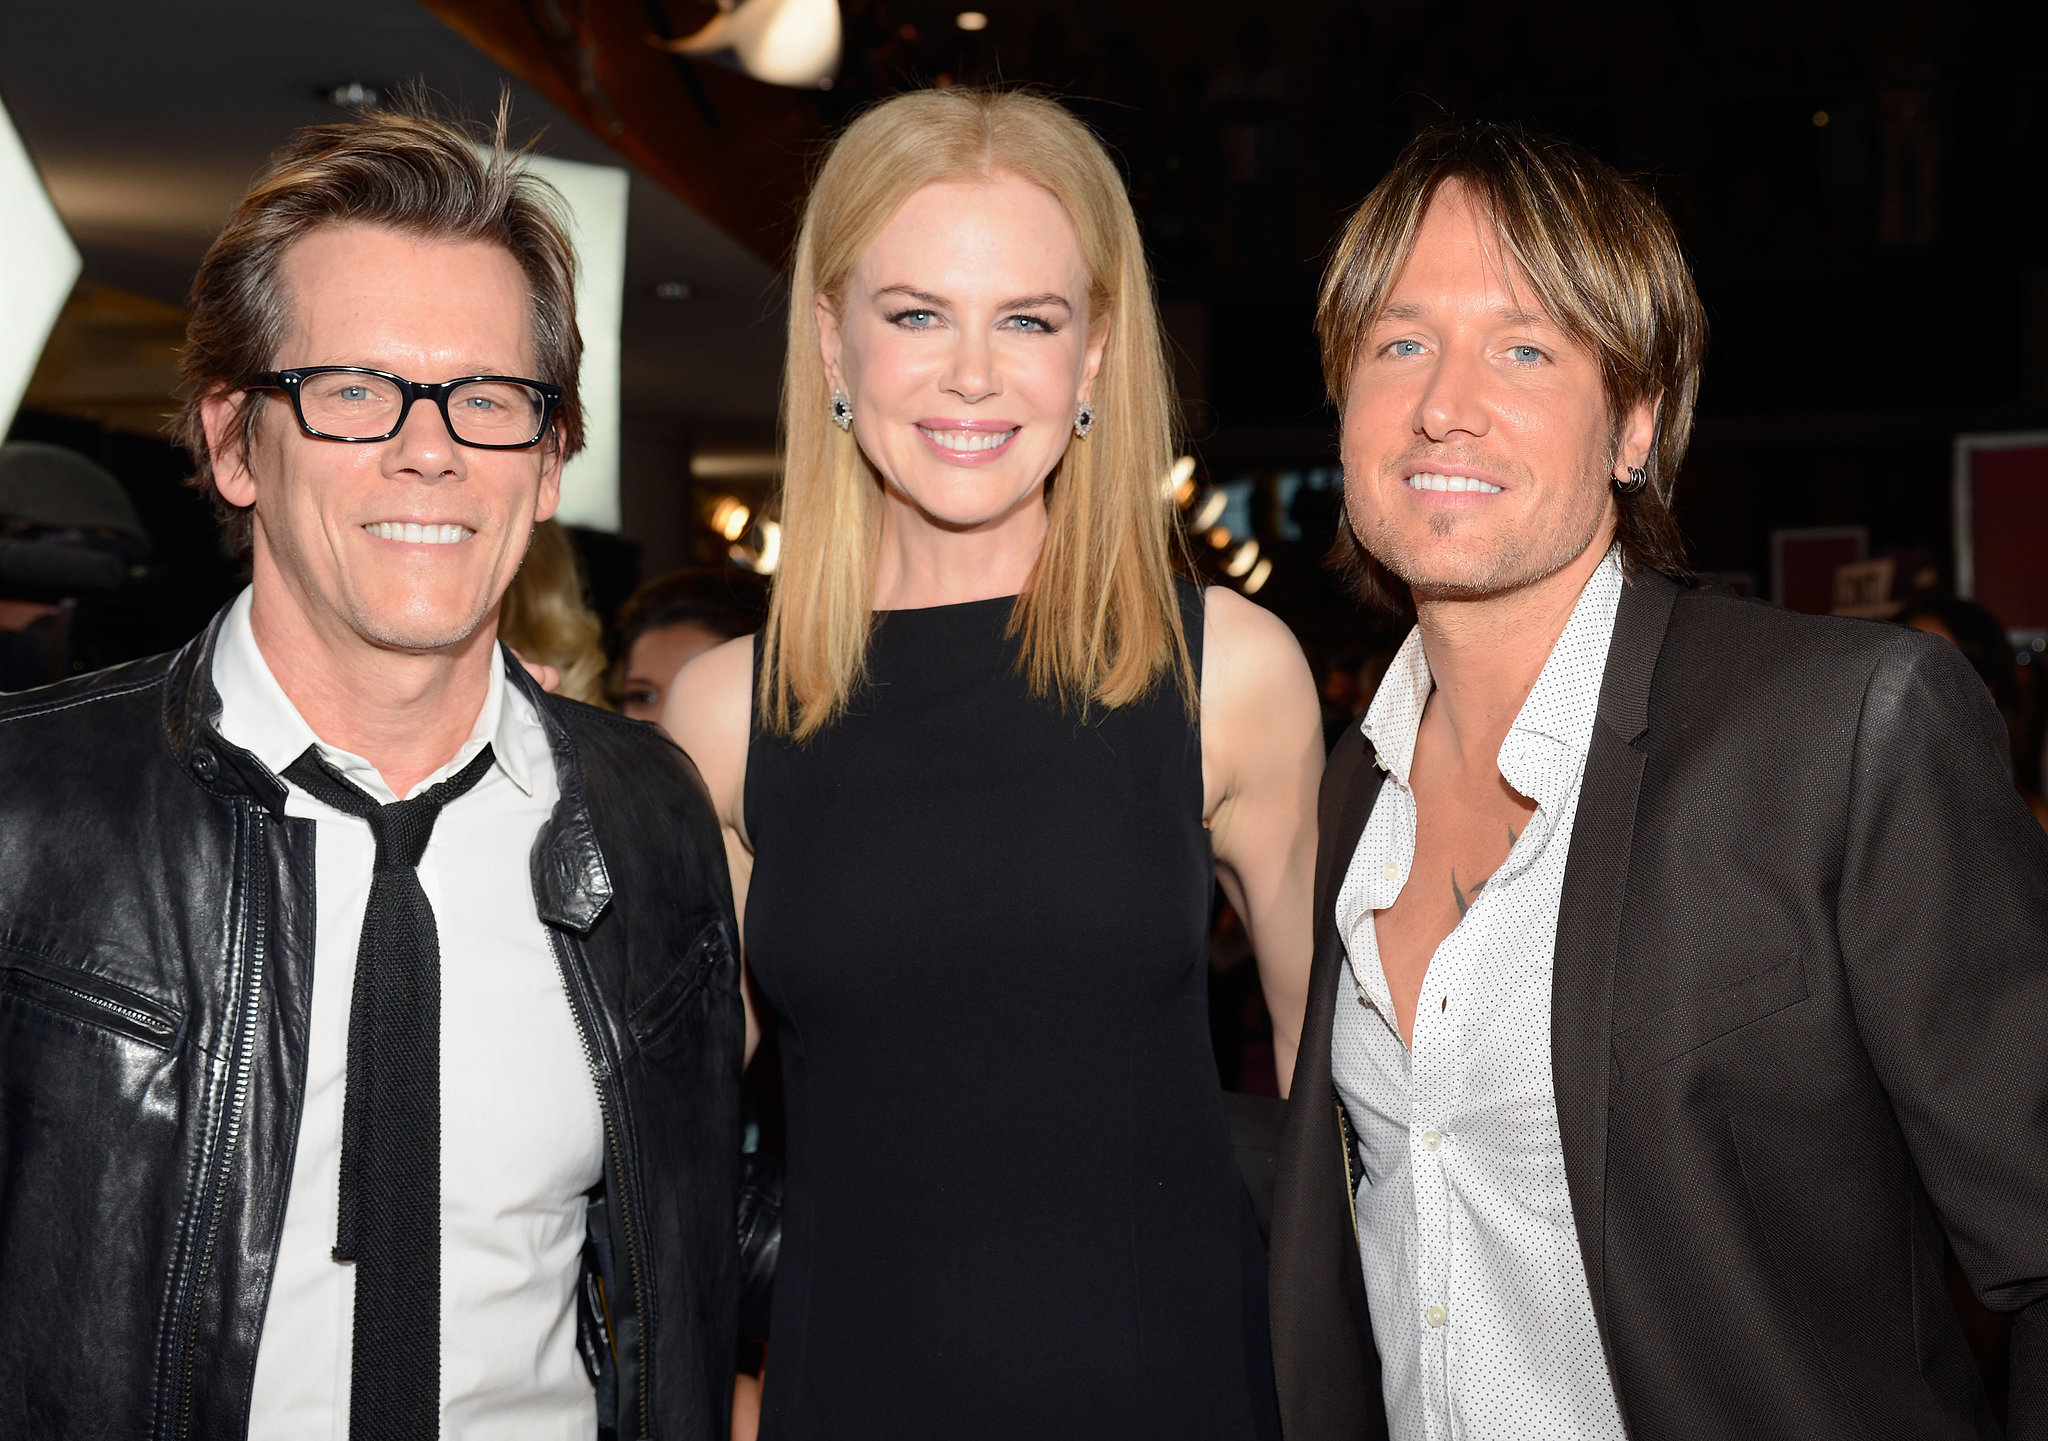 Nicole kidman and keith urban at the 2013 cmt awards for Keith urban and nicole kidman latest news